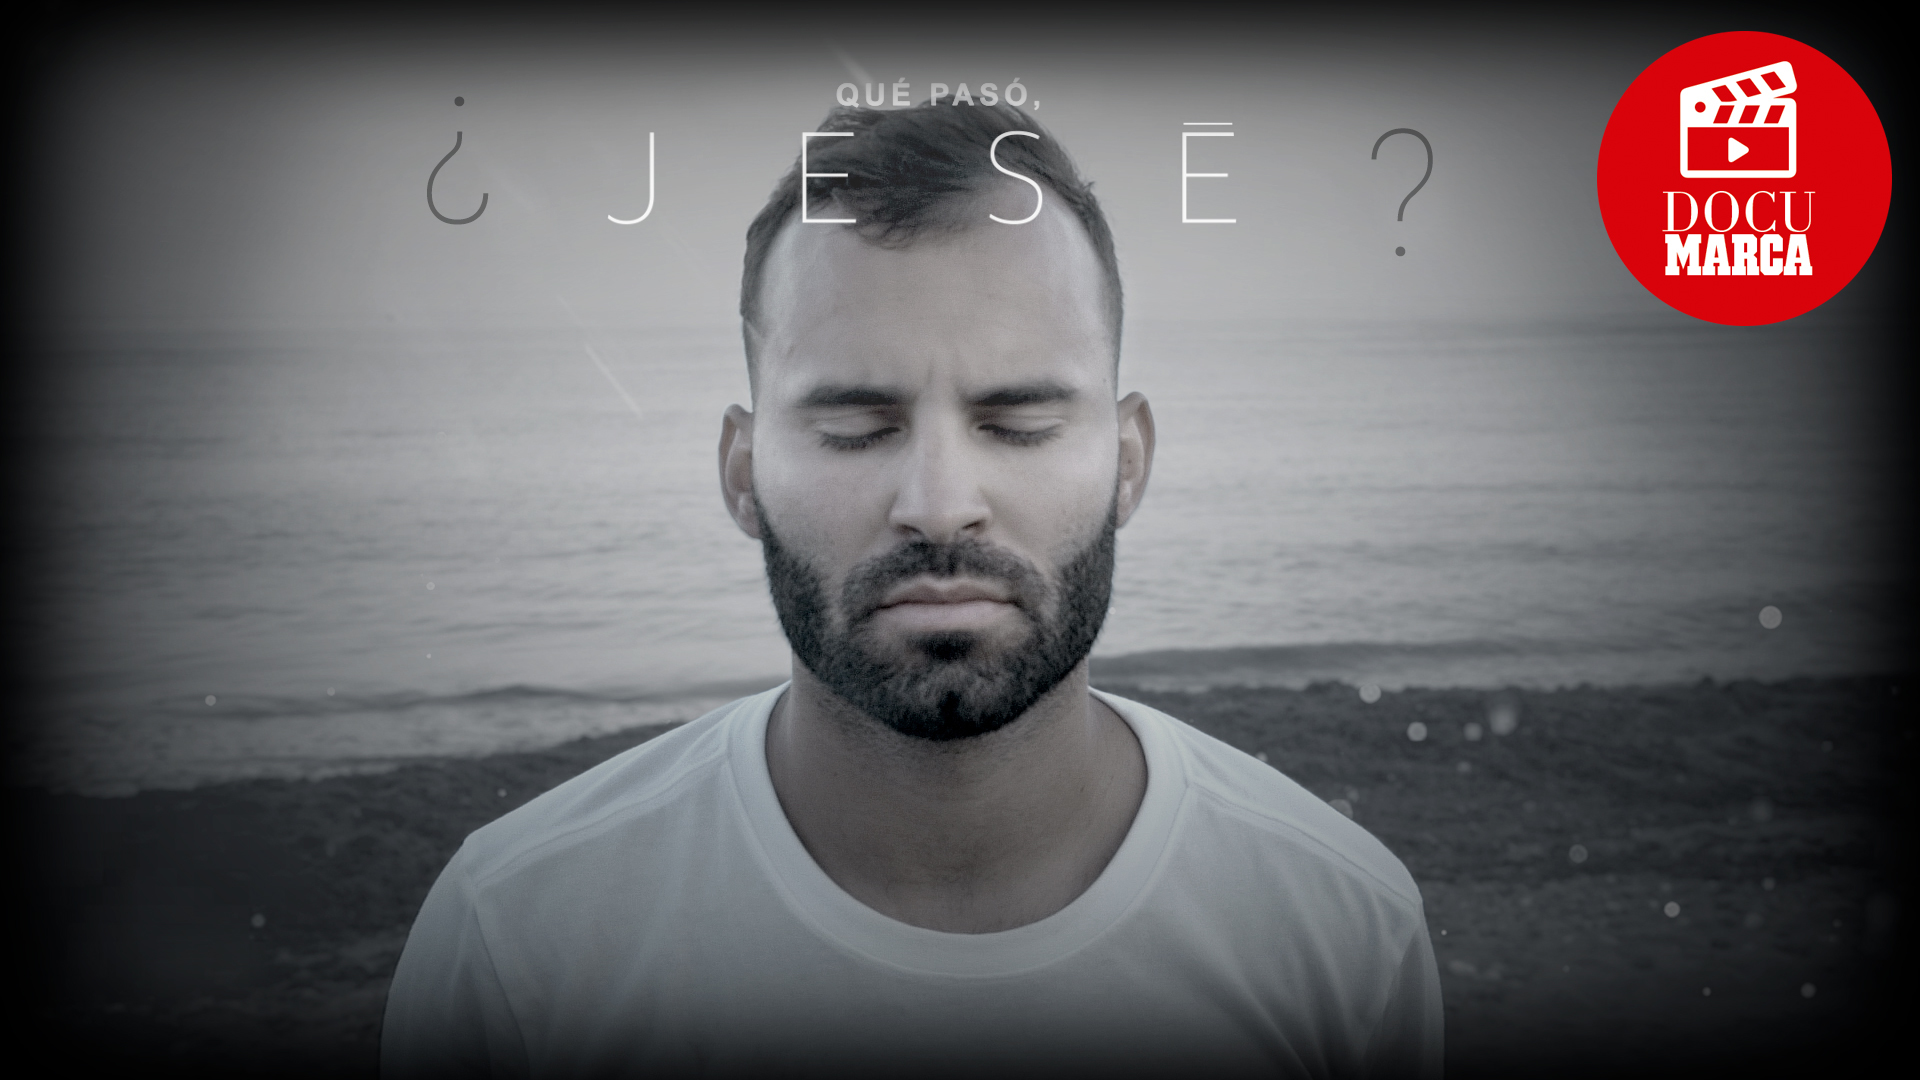 MARCA documentary: What happened to Jese?